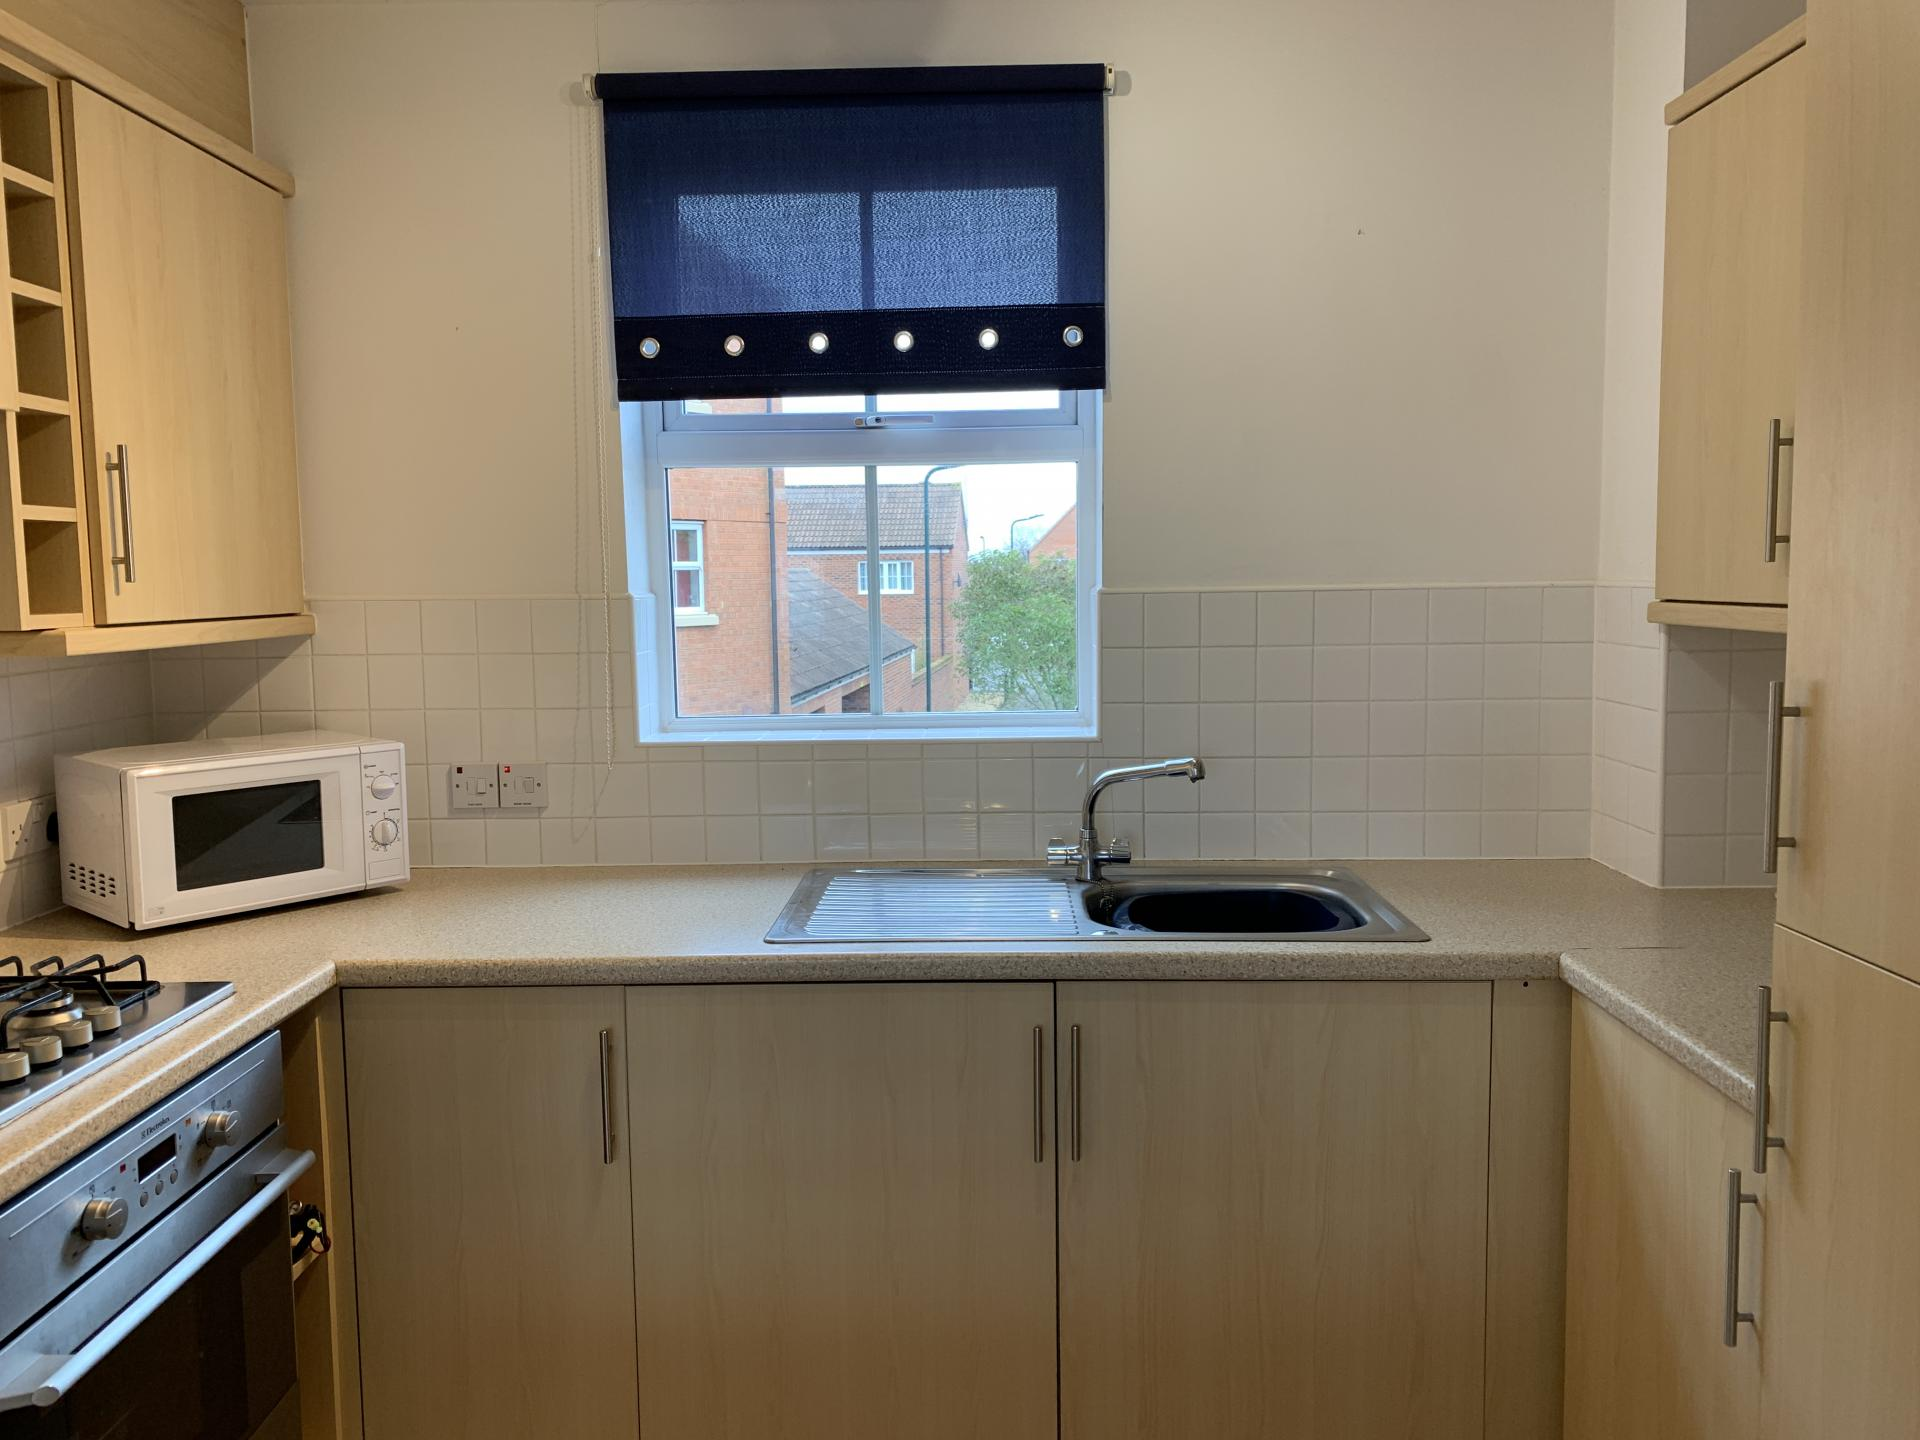 Kitchen at Deer Valley Apartment, Centre, Peterborough